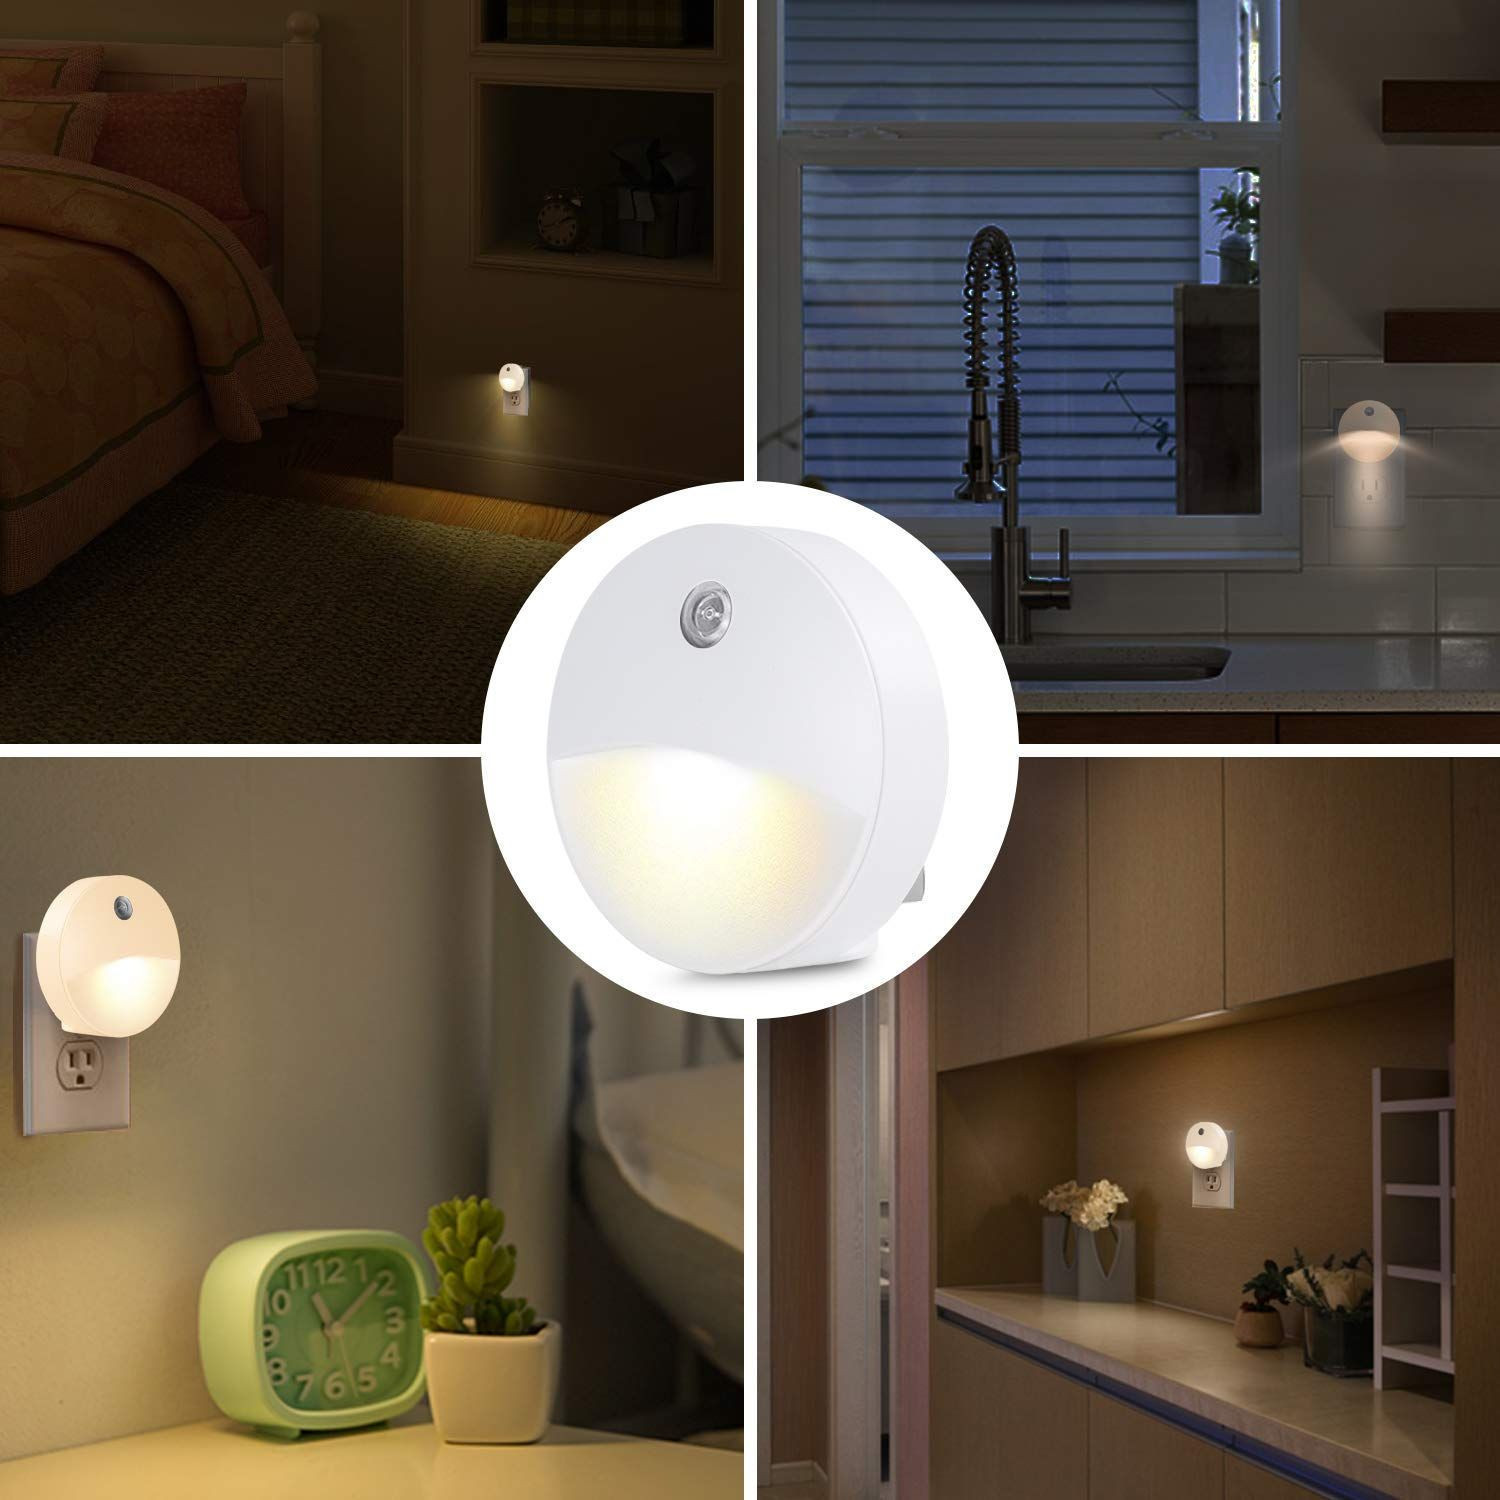 Auto-sensor Plug-in wall socket led motion sensor night light